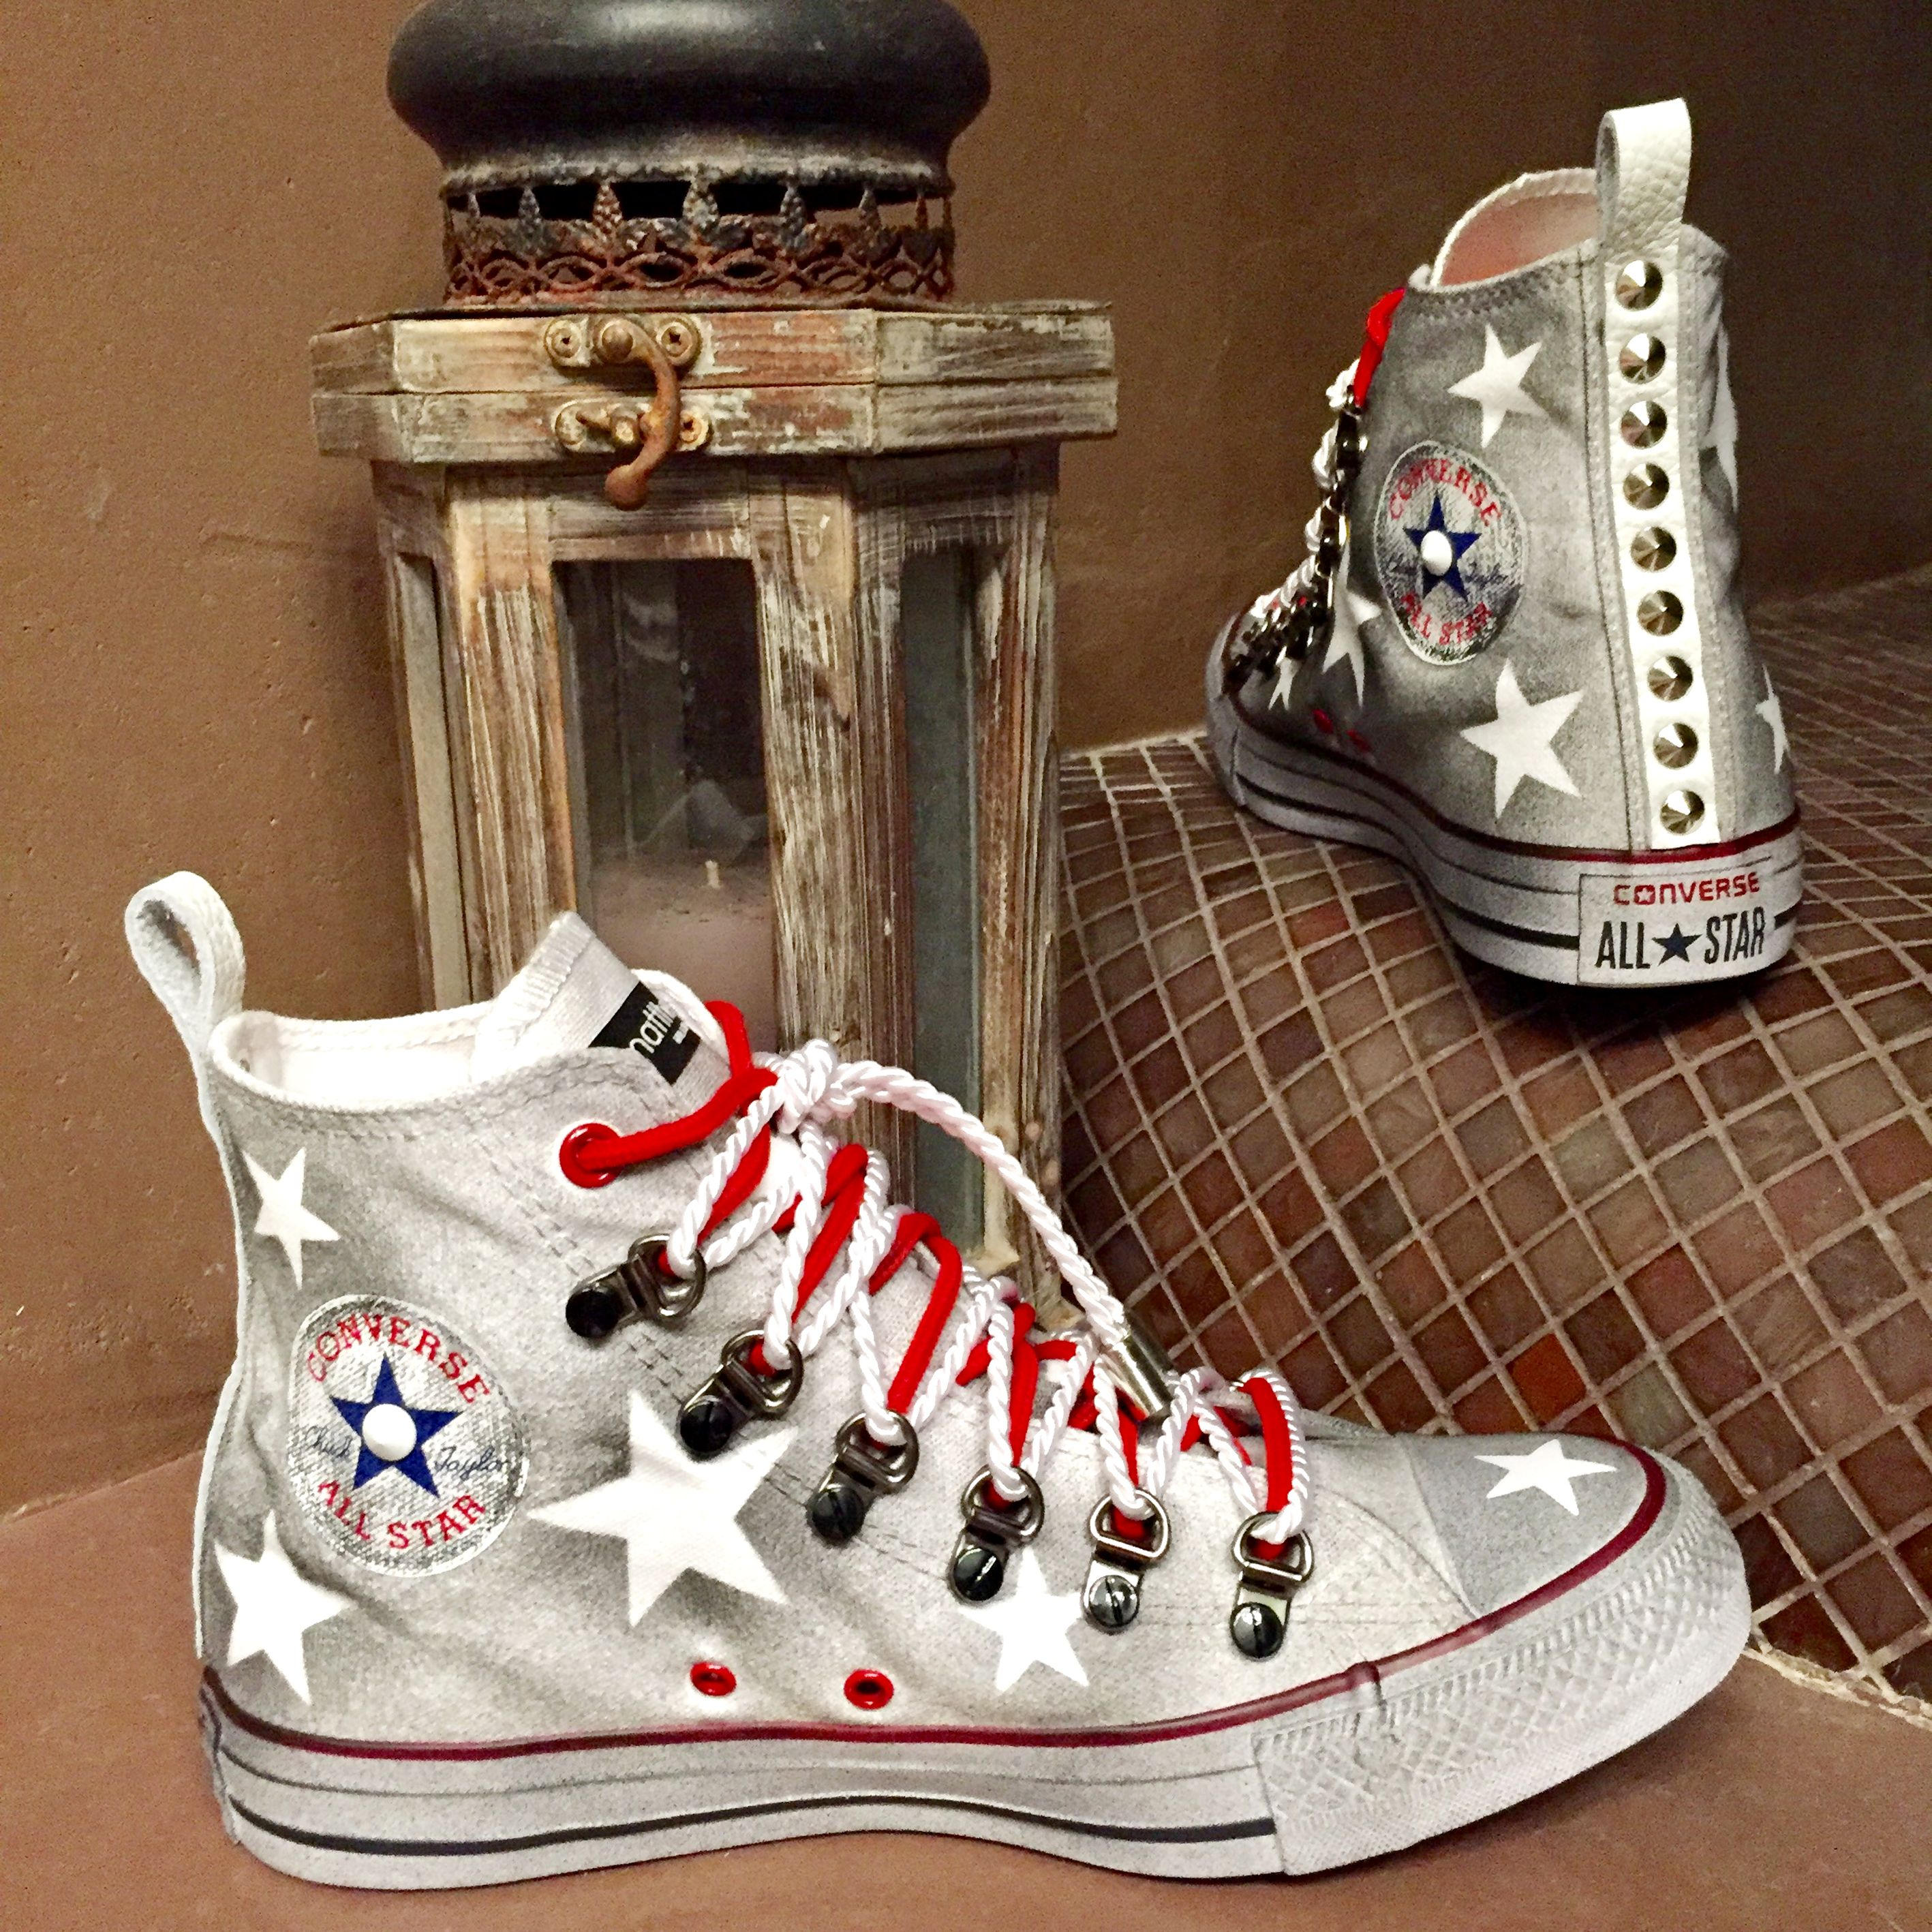 converse all star stelle